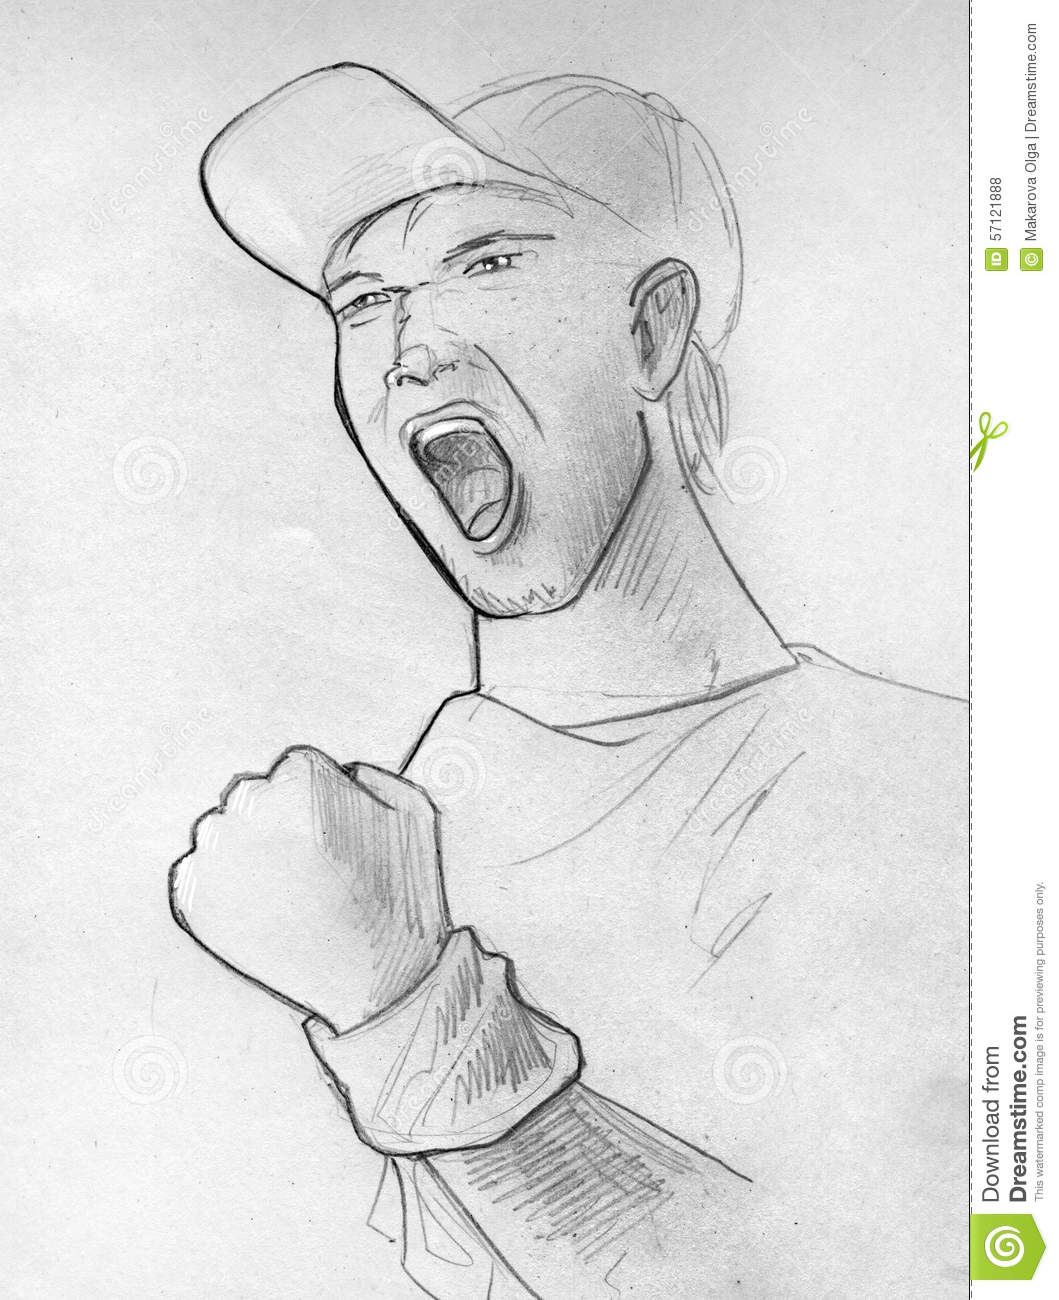 Hand drawn pencil sketch of a shouting man his fist clenched his face angry